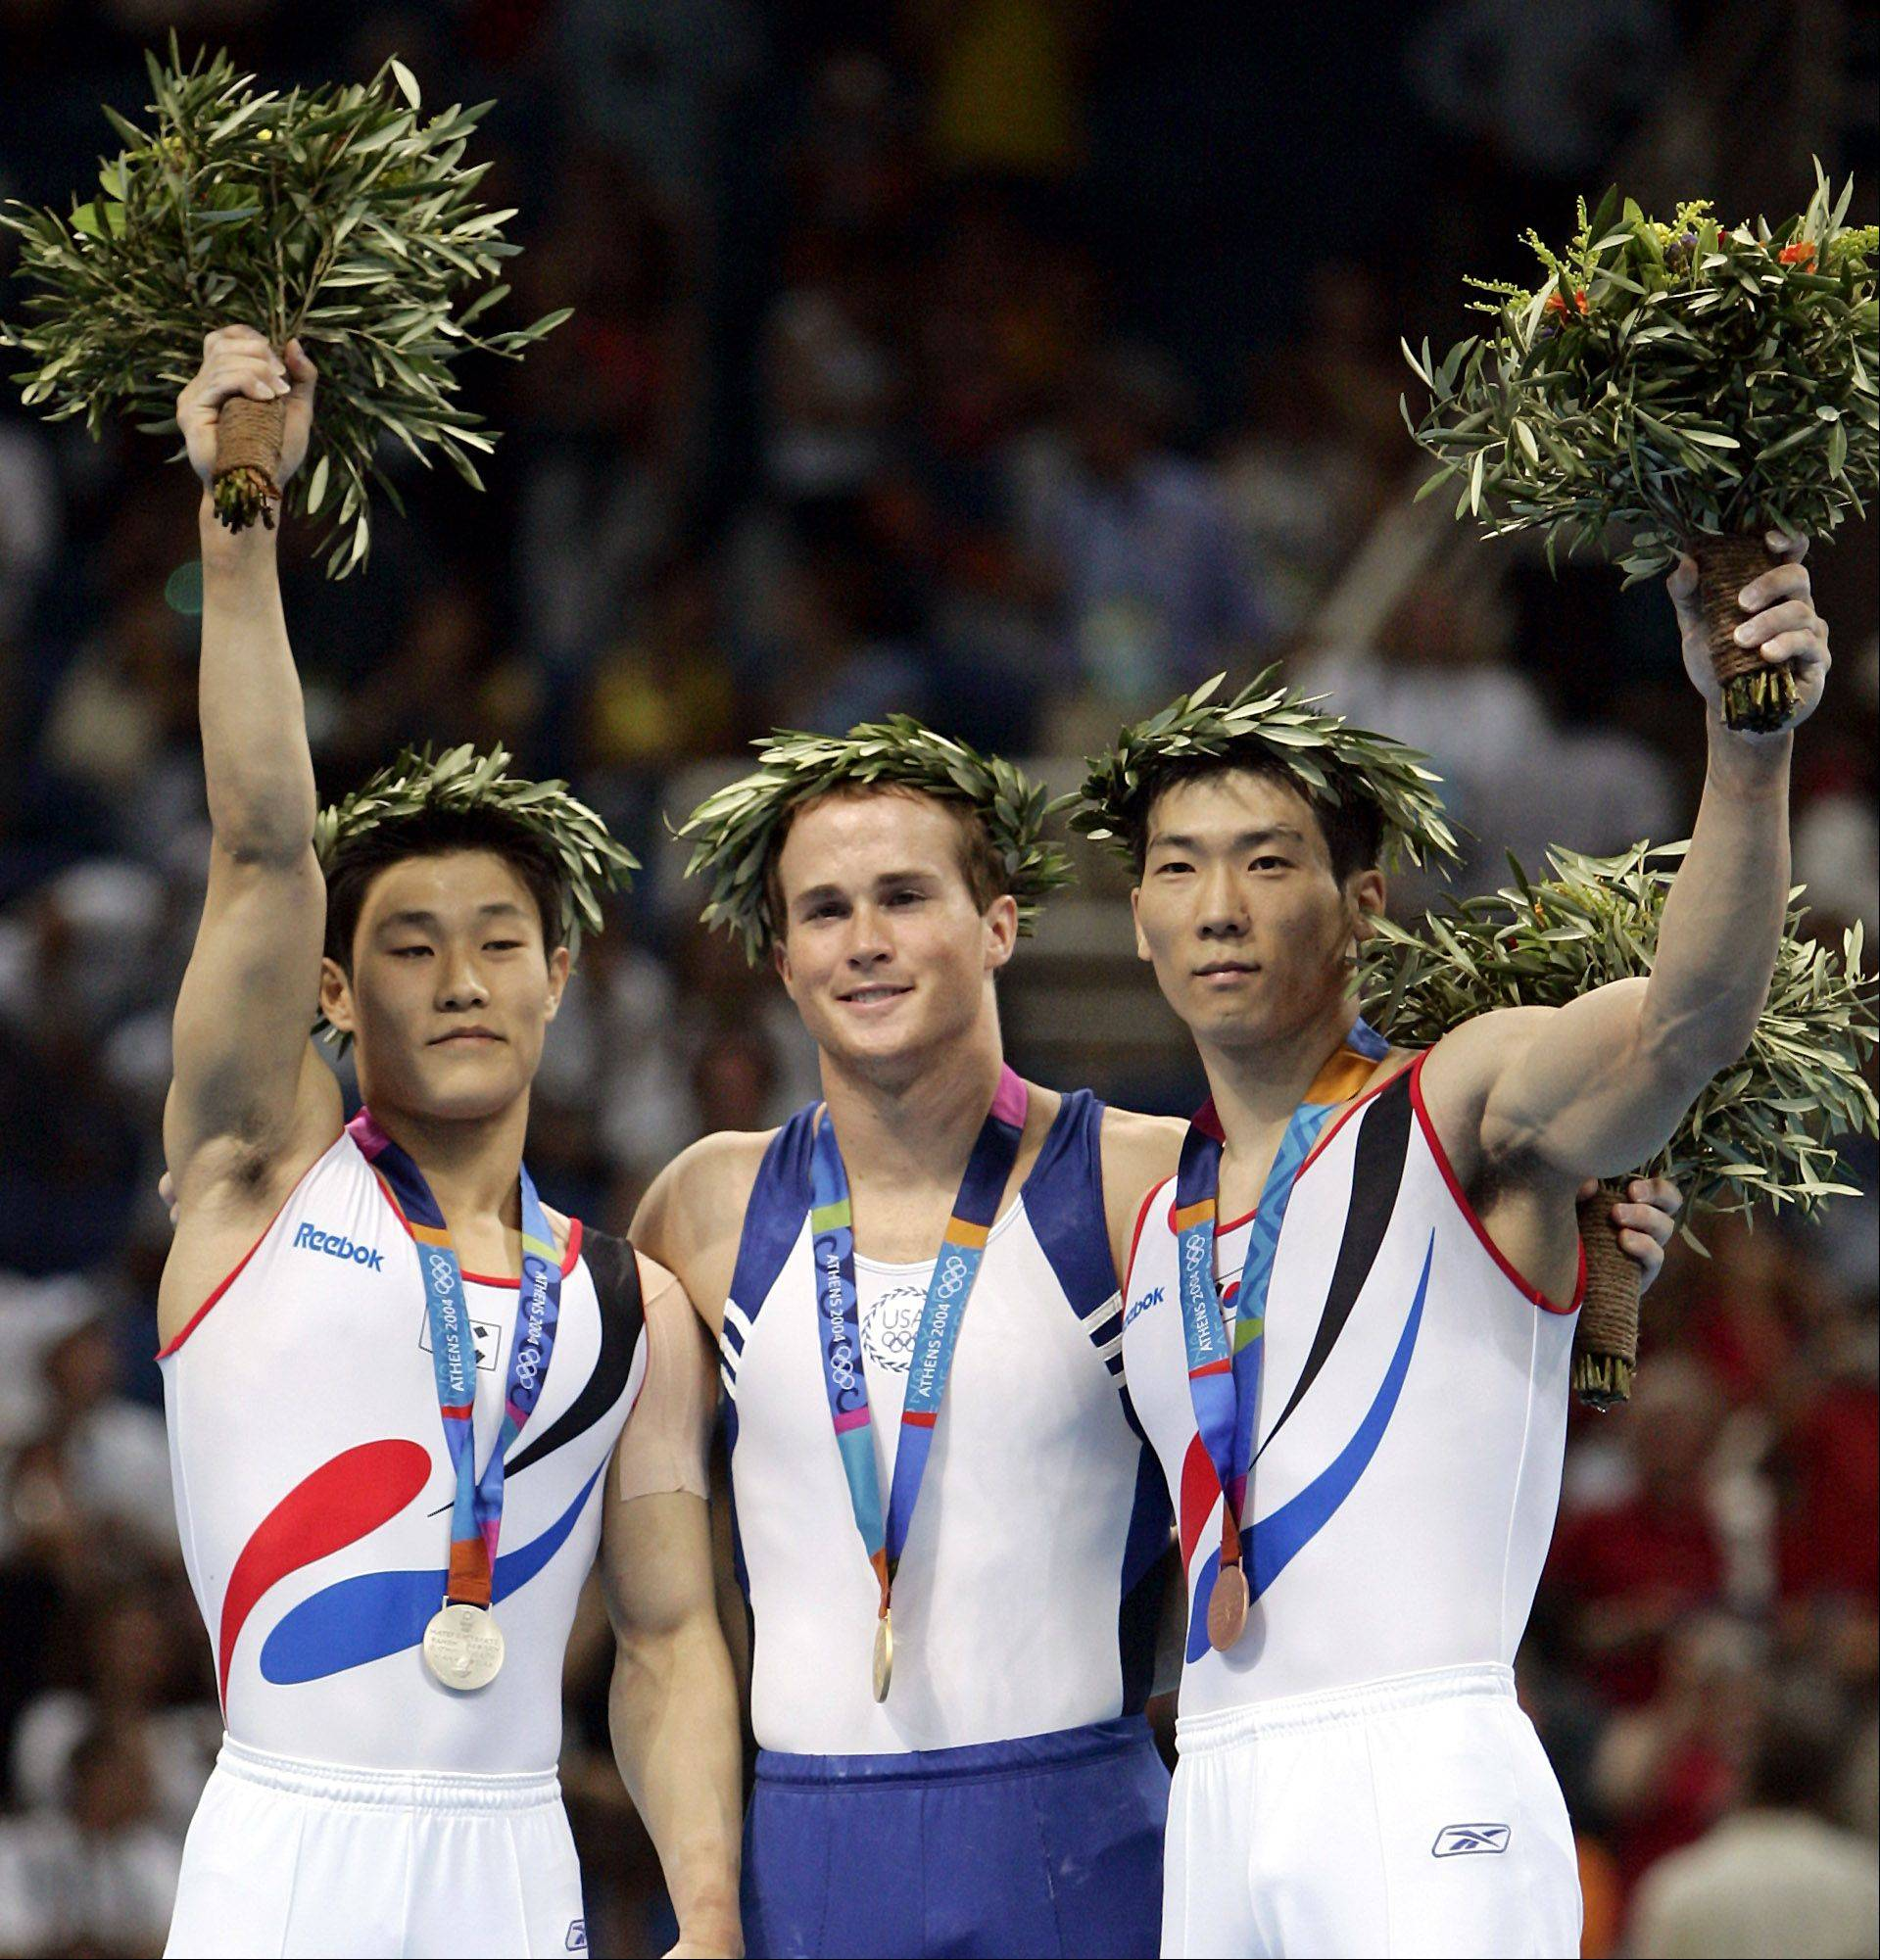 Gold medal winner Paul Hamm, of the United States, center, silver medal winner Kim Dae Eun, left, and bronze medal winner Yang Tae Young, of Korea, celebrate together during the medal ceremony for the men's gymnastics individual all-around final at the 2004 Olympic Games in Athens, Wednesday, Aug. 18, 2004. The International Gymnastics Federation ruled Saturday Aug. 21, 2004 that Yang Tae-young was unfairly docked a tenth of a point in the all-around final, costing him the gold medal that ended up going to Hamm. The South Korean got the bronze instead.